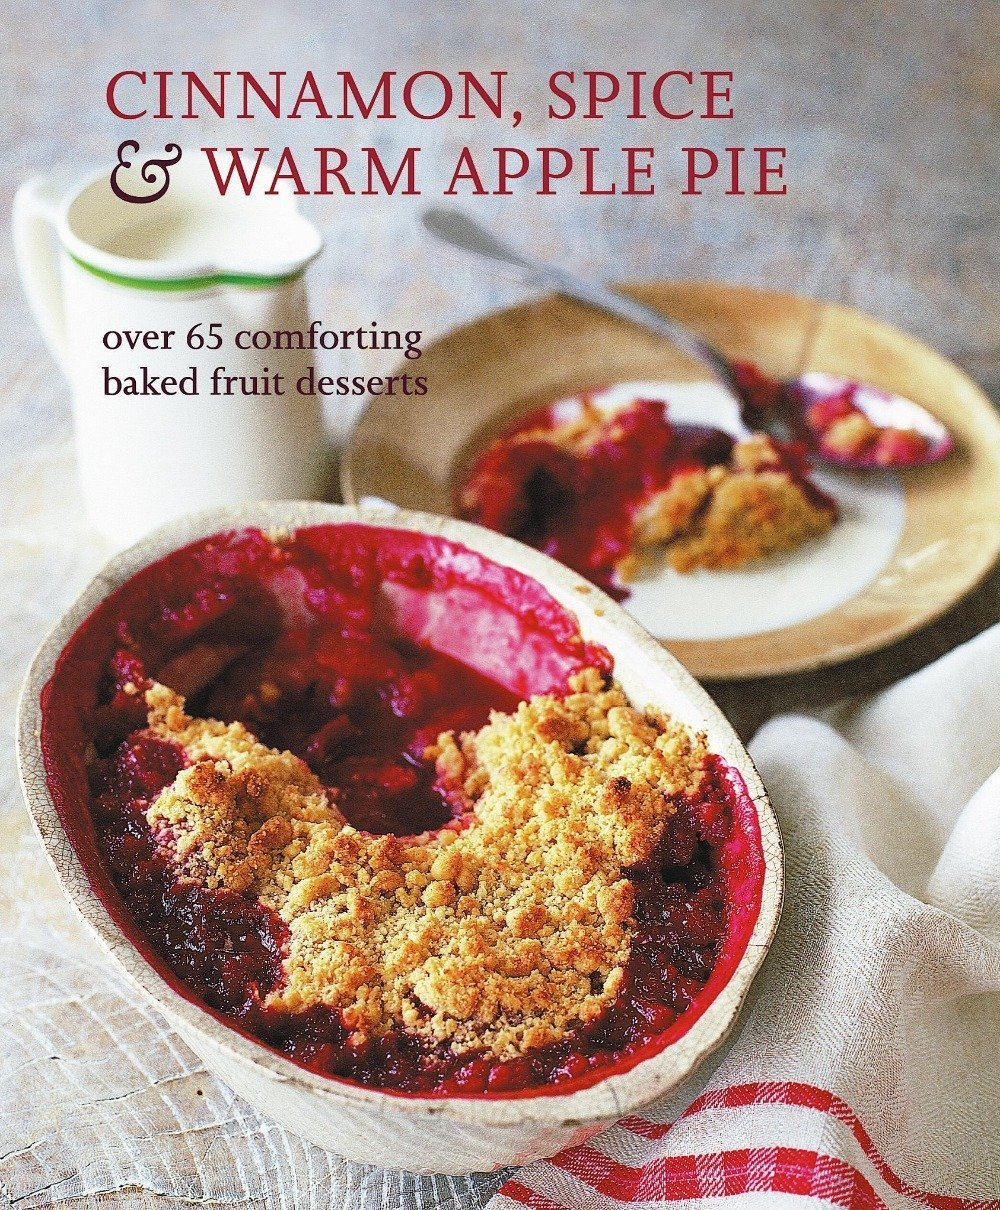 Cinnamon, Spice, & Warm Apple Pie: Over 65 Comforting Baked Fruit Desserts - Art Is In Cakes, Bakery & SupplyBookDefault Title